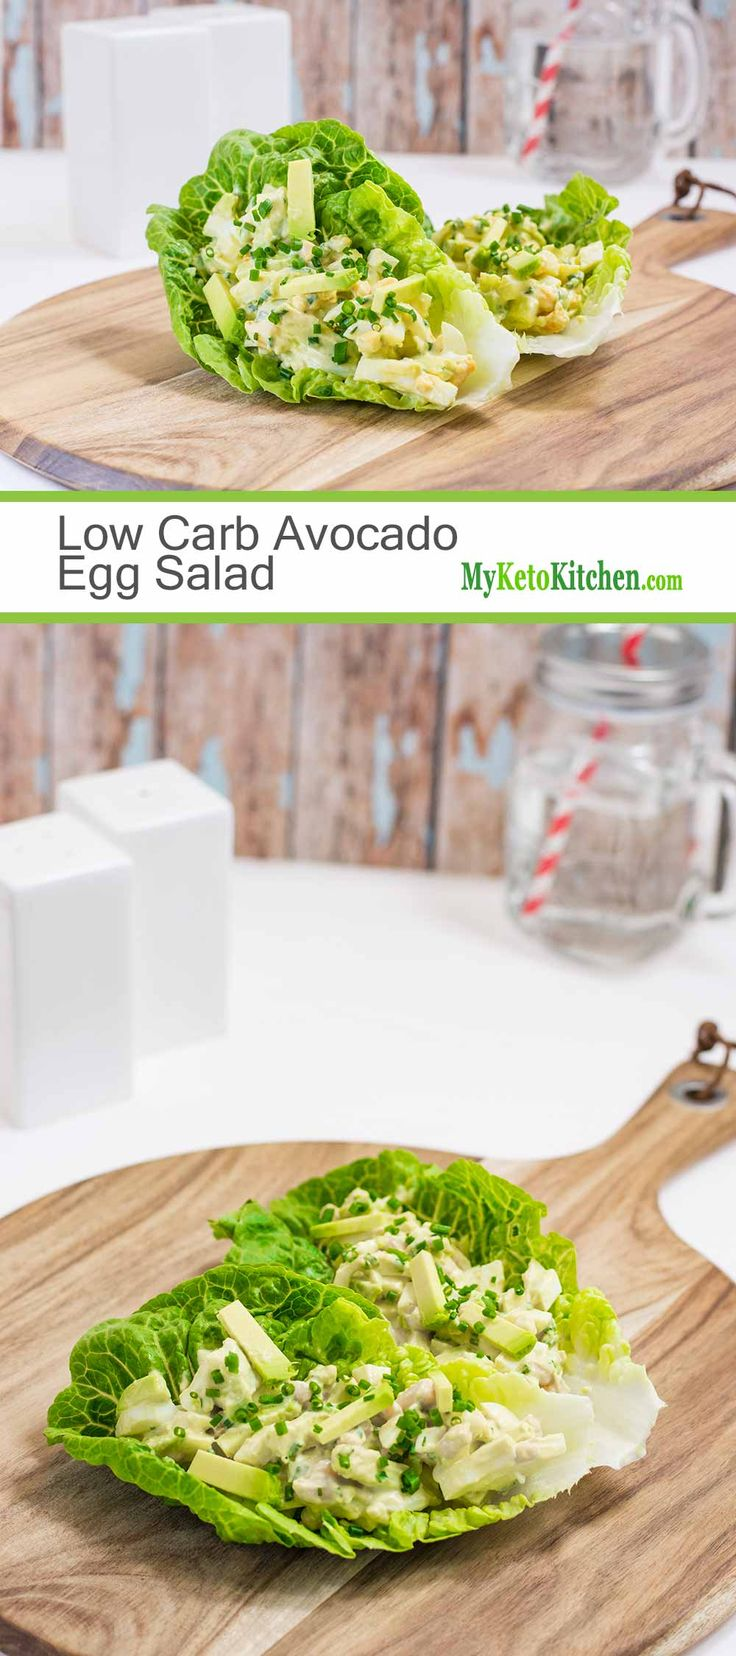 Keto Egg Salad Wraps with Avocado - Healthy Fats & Potassium | Recipe | My Keto Kitchen - Lunch ...